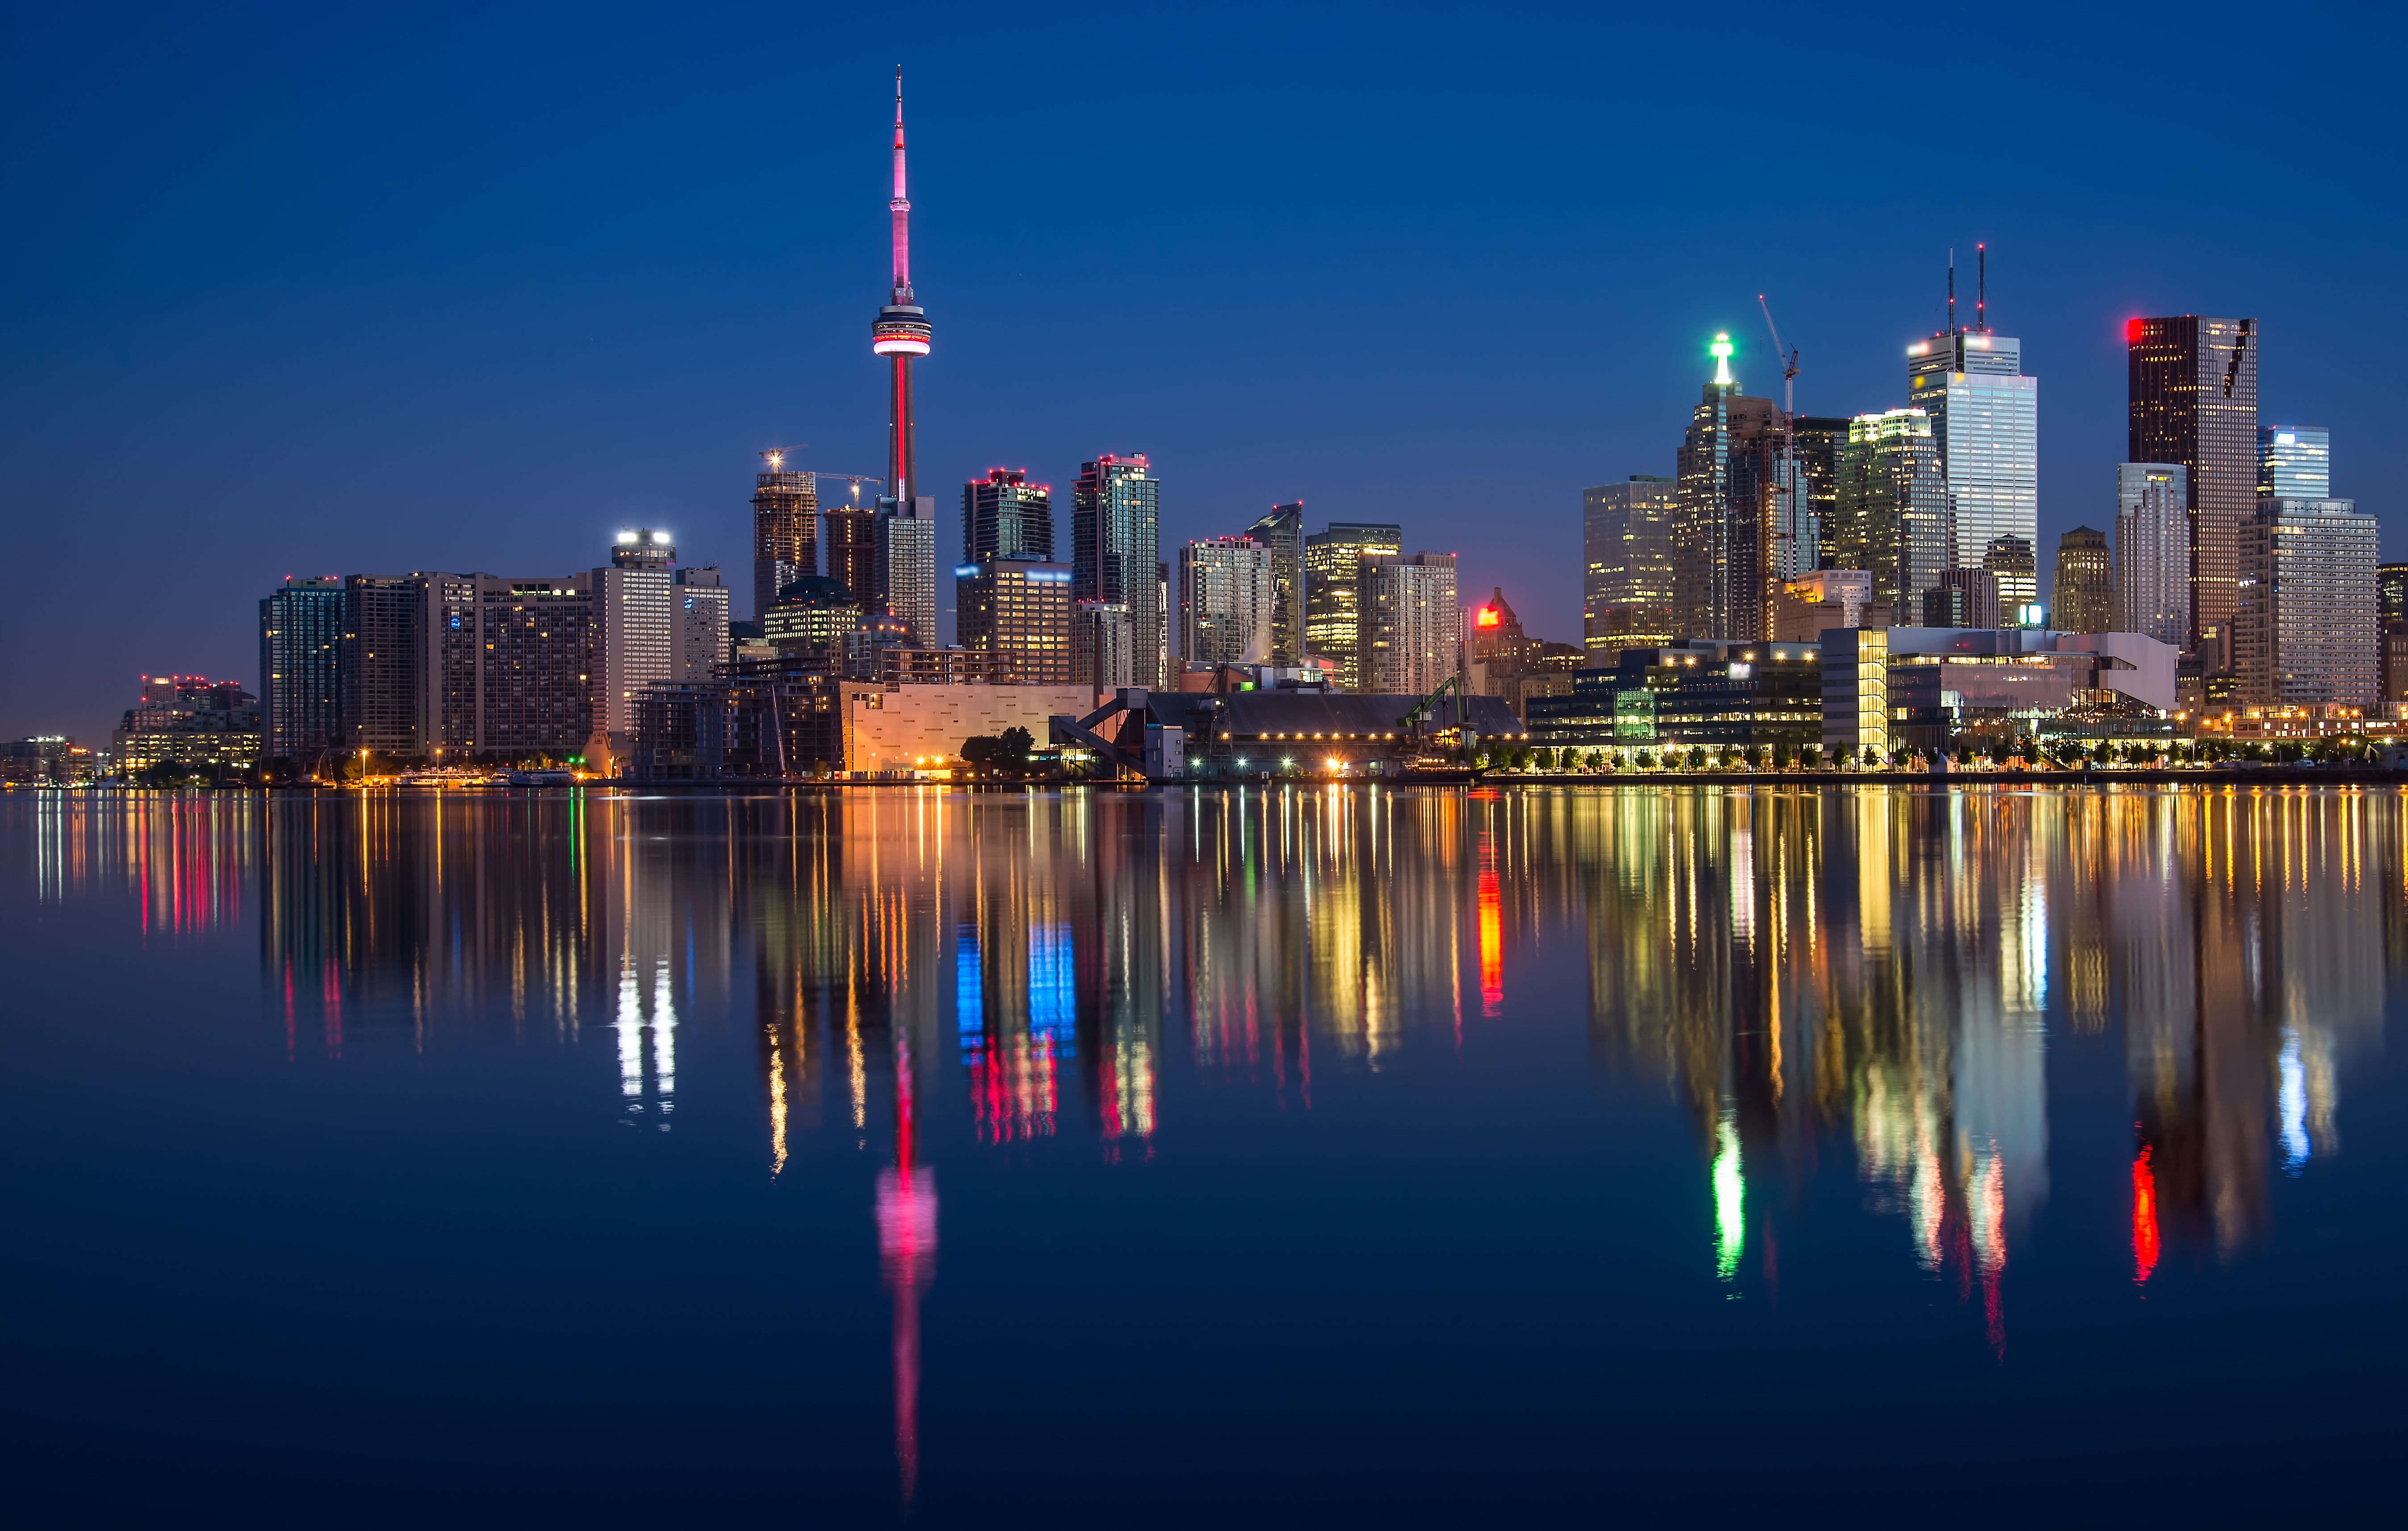 Iphone X Dynamic Wallpaper Download Cn Tower And Polson Street Pier Toronto Canada 5k Retina